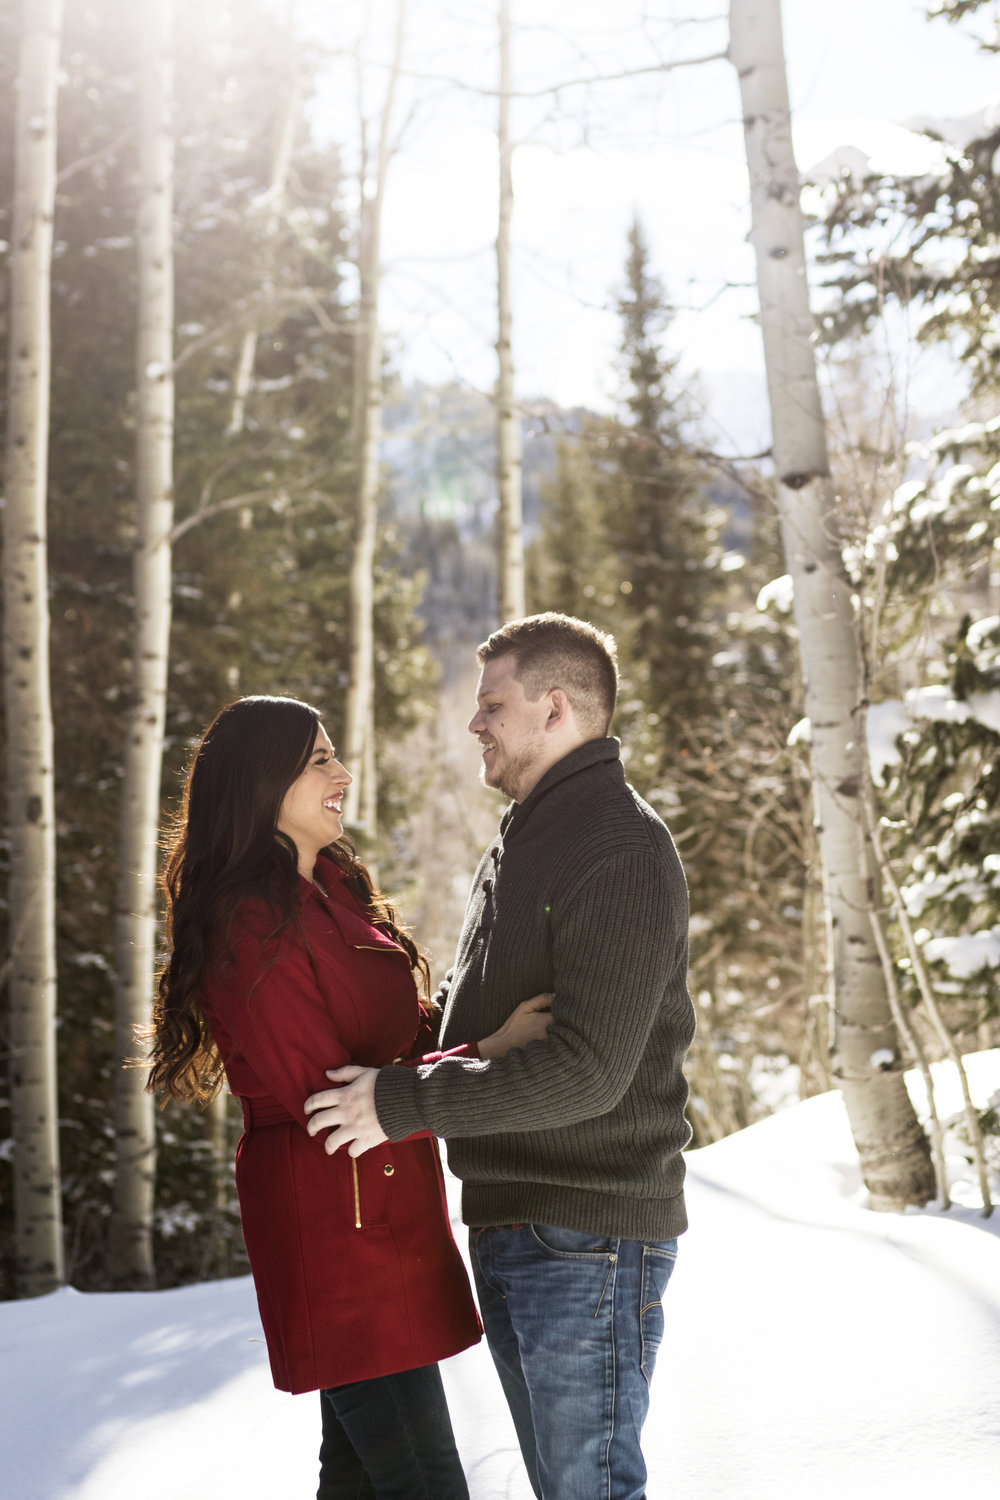 Snowey Utah Winter Engagements in Little Cottonwood Canyon by Bri Bergman Photography01.jpg